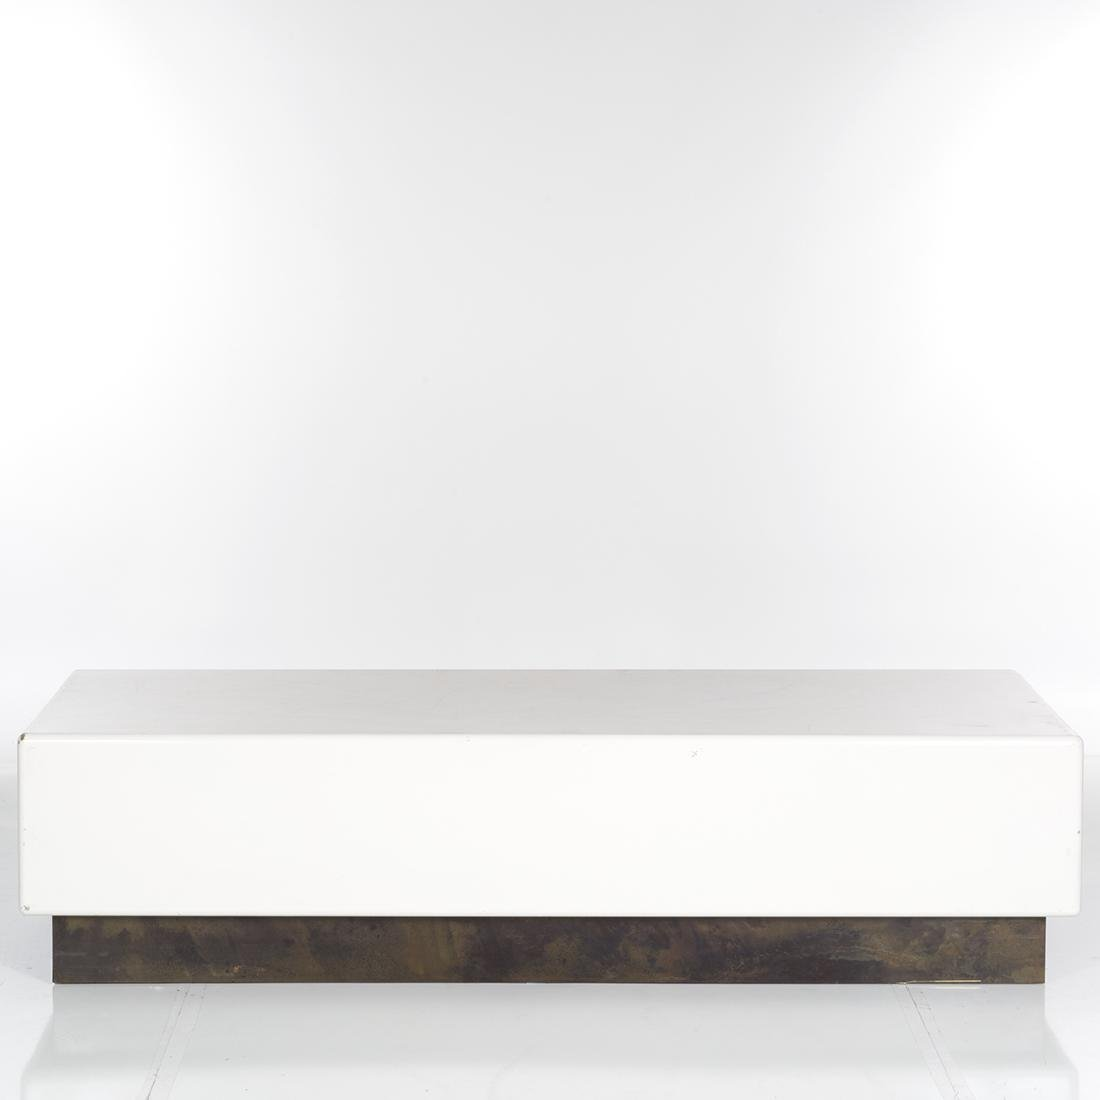 Lacquered Gallery Benches (2) - 2